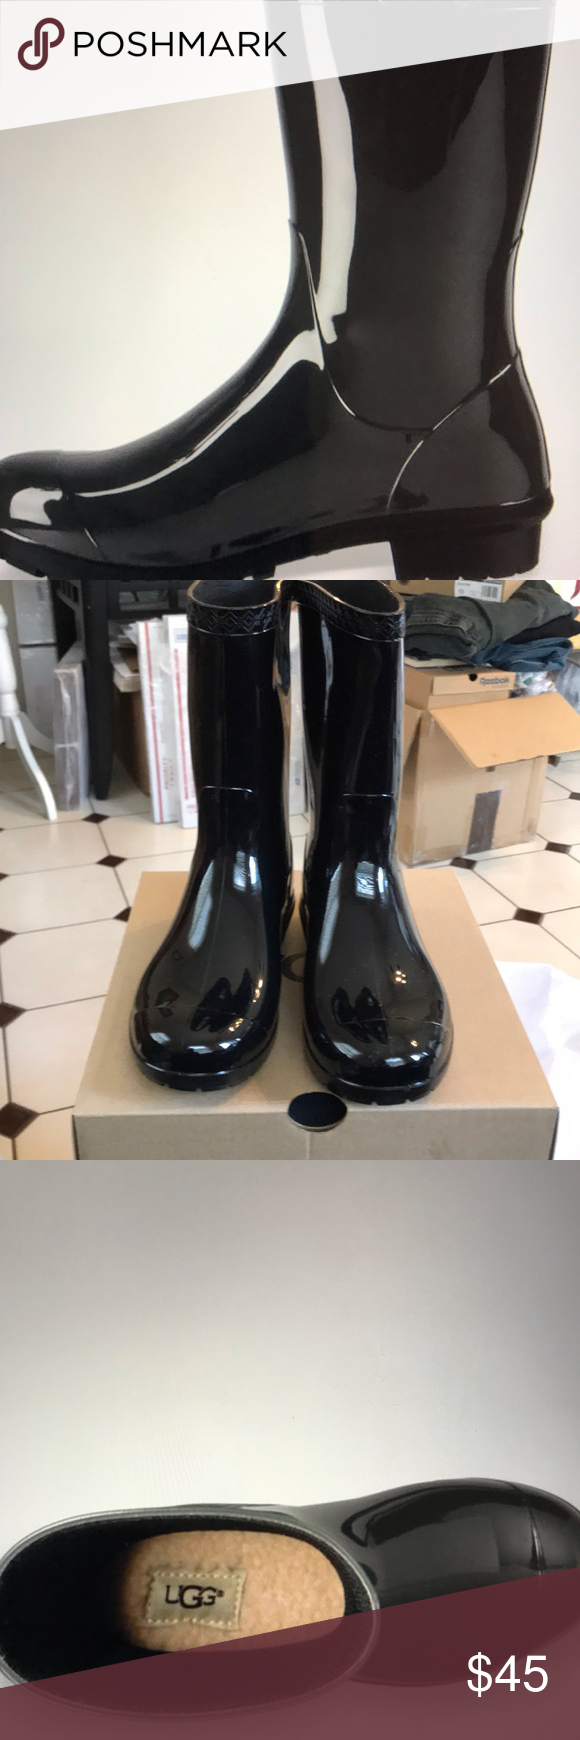 "UGG Girls RAANA Rubber Rain Boots NWT 2 Ugg Girls RAANA Rubber Rain Boots NWT  Sharp new with box size 2 RubberRain Boots. Perfect for splashing in the rain and wet game days! Features Solid black color, sheepskin insole cushion which is removable. PVC outsole. 5"" shaft. UGG Shoes Boots #uggbootsoutfitblackgirl"